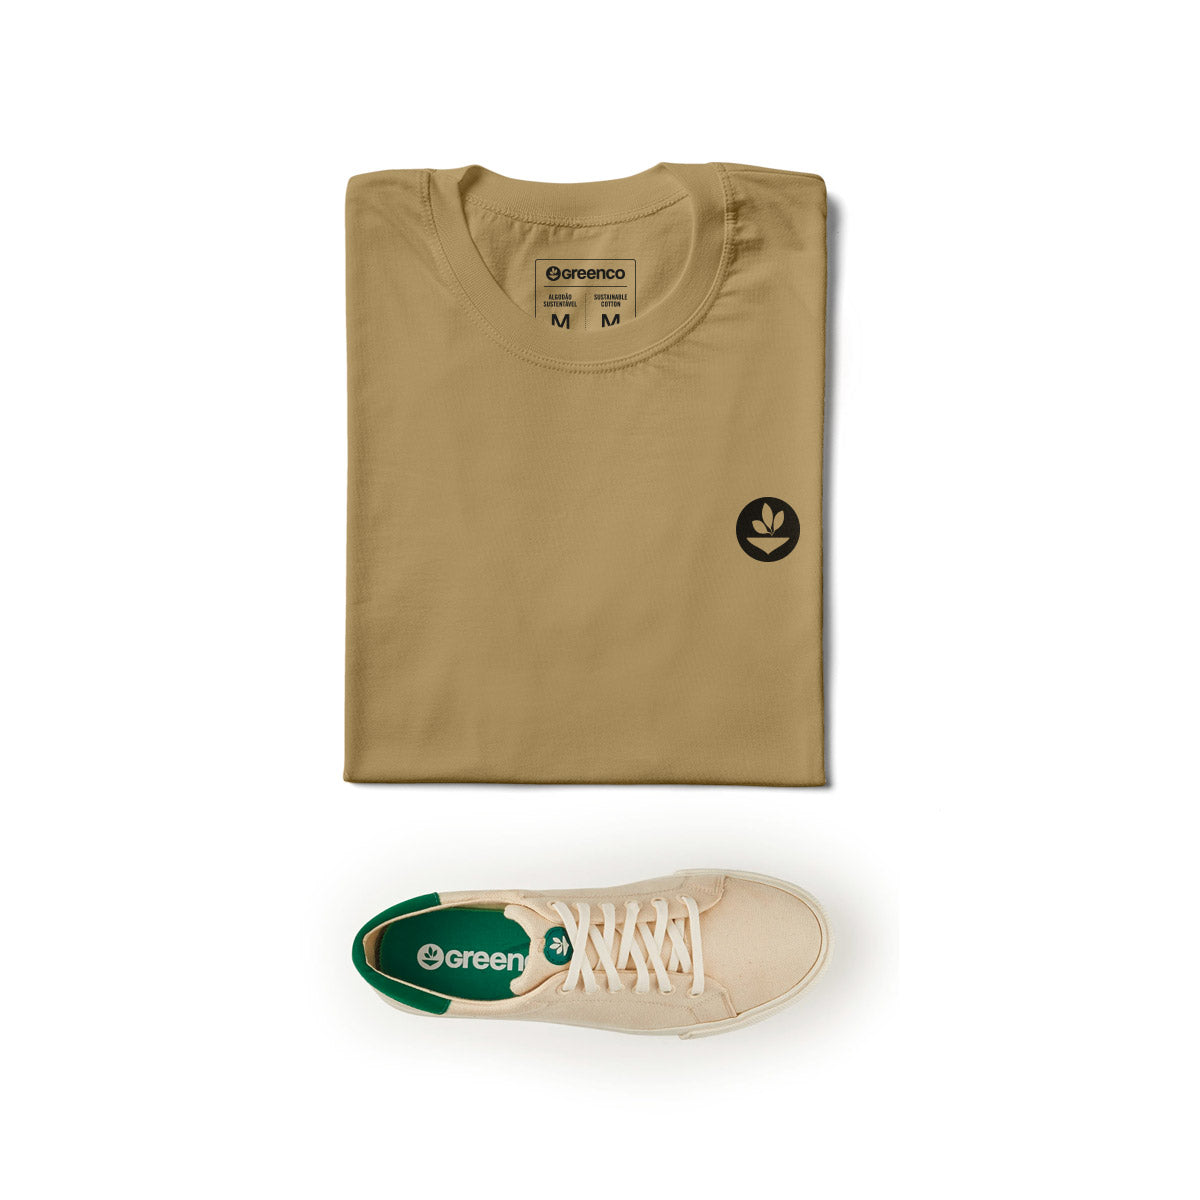 Atlantic Ocean Sneaker Women's Kit + Basic T-shirt